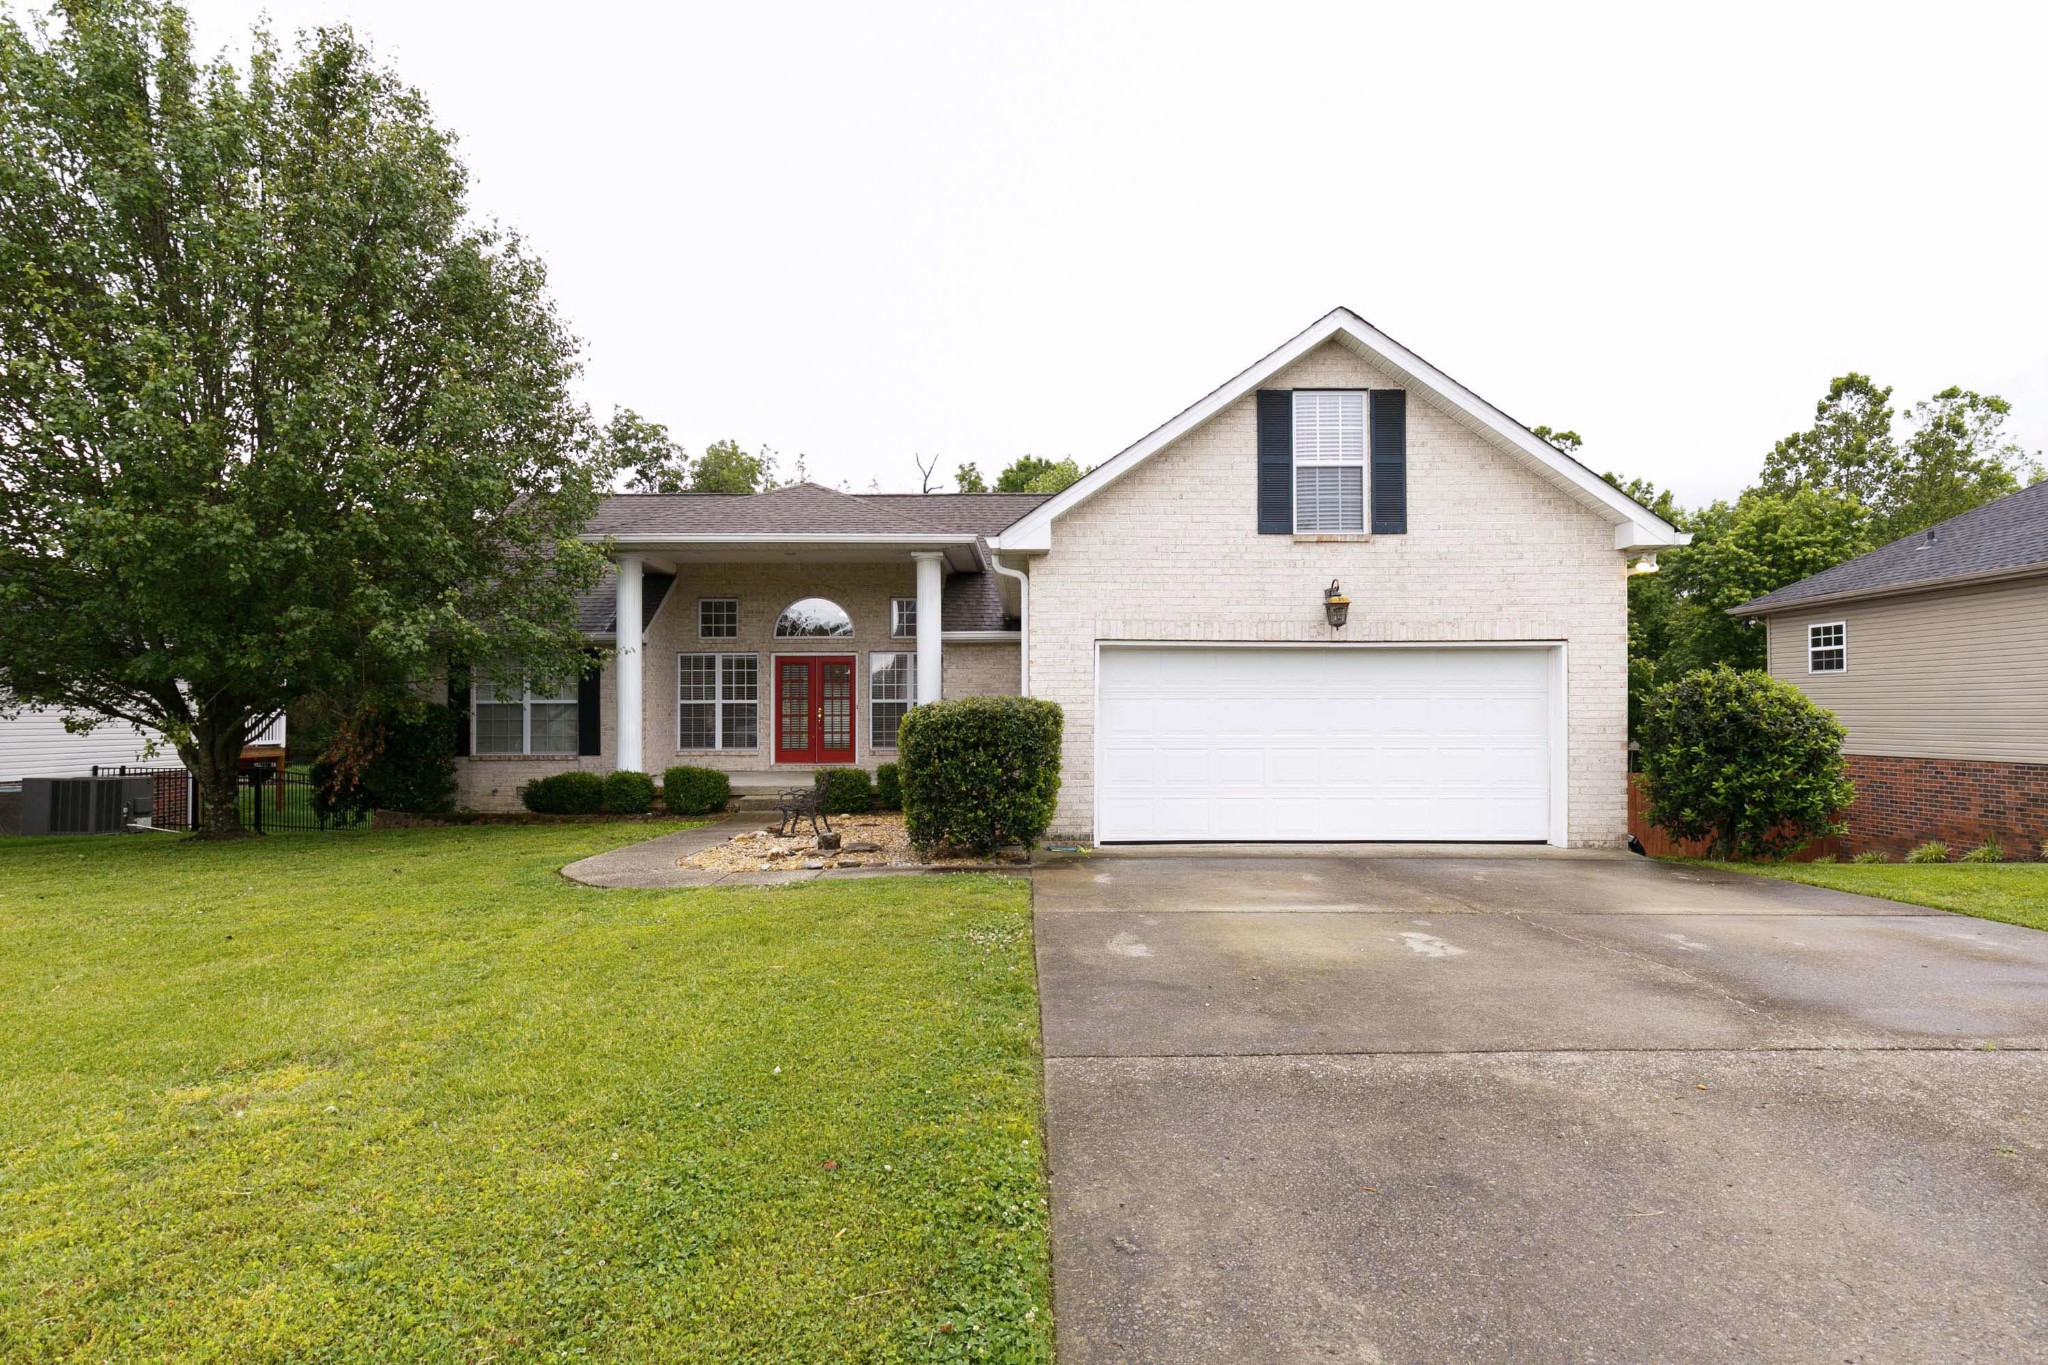 1003 Secretariat Dr, Mount Juliet, TN 37122 - Mount Juliet, TN real estate listing